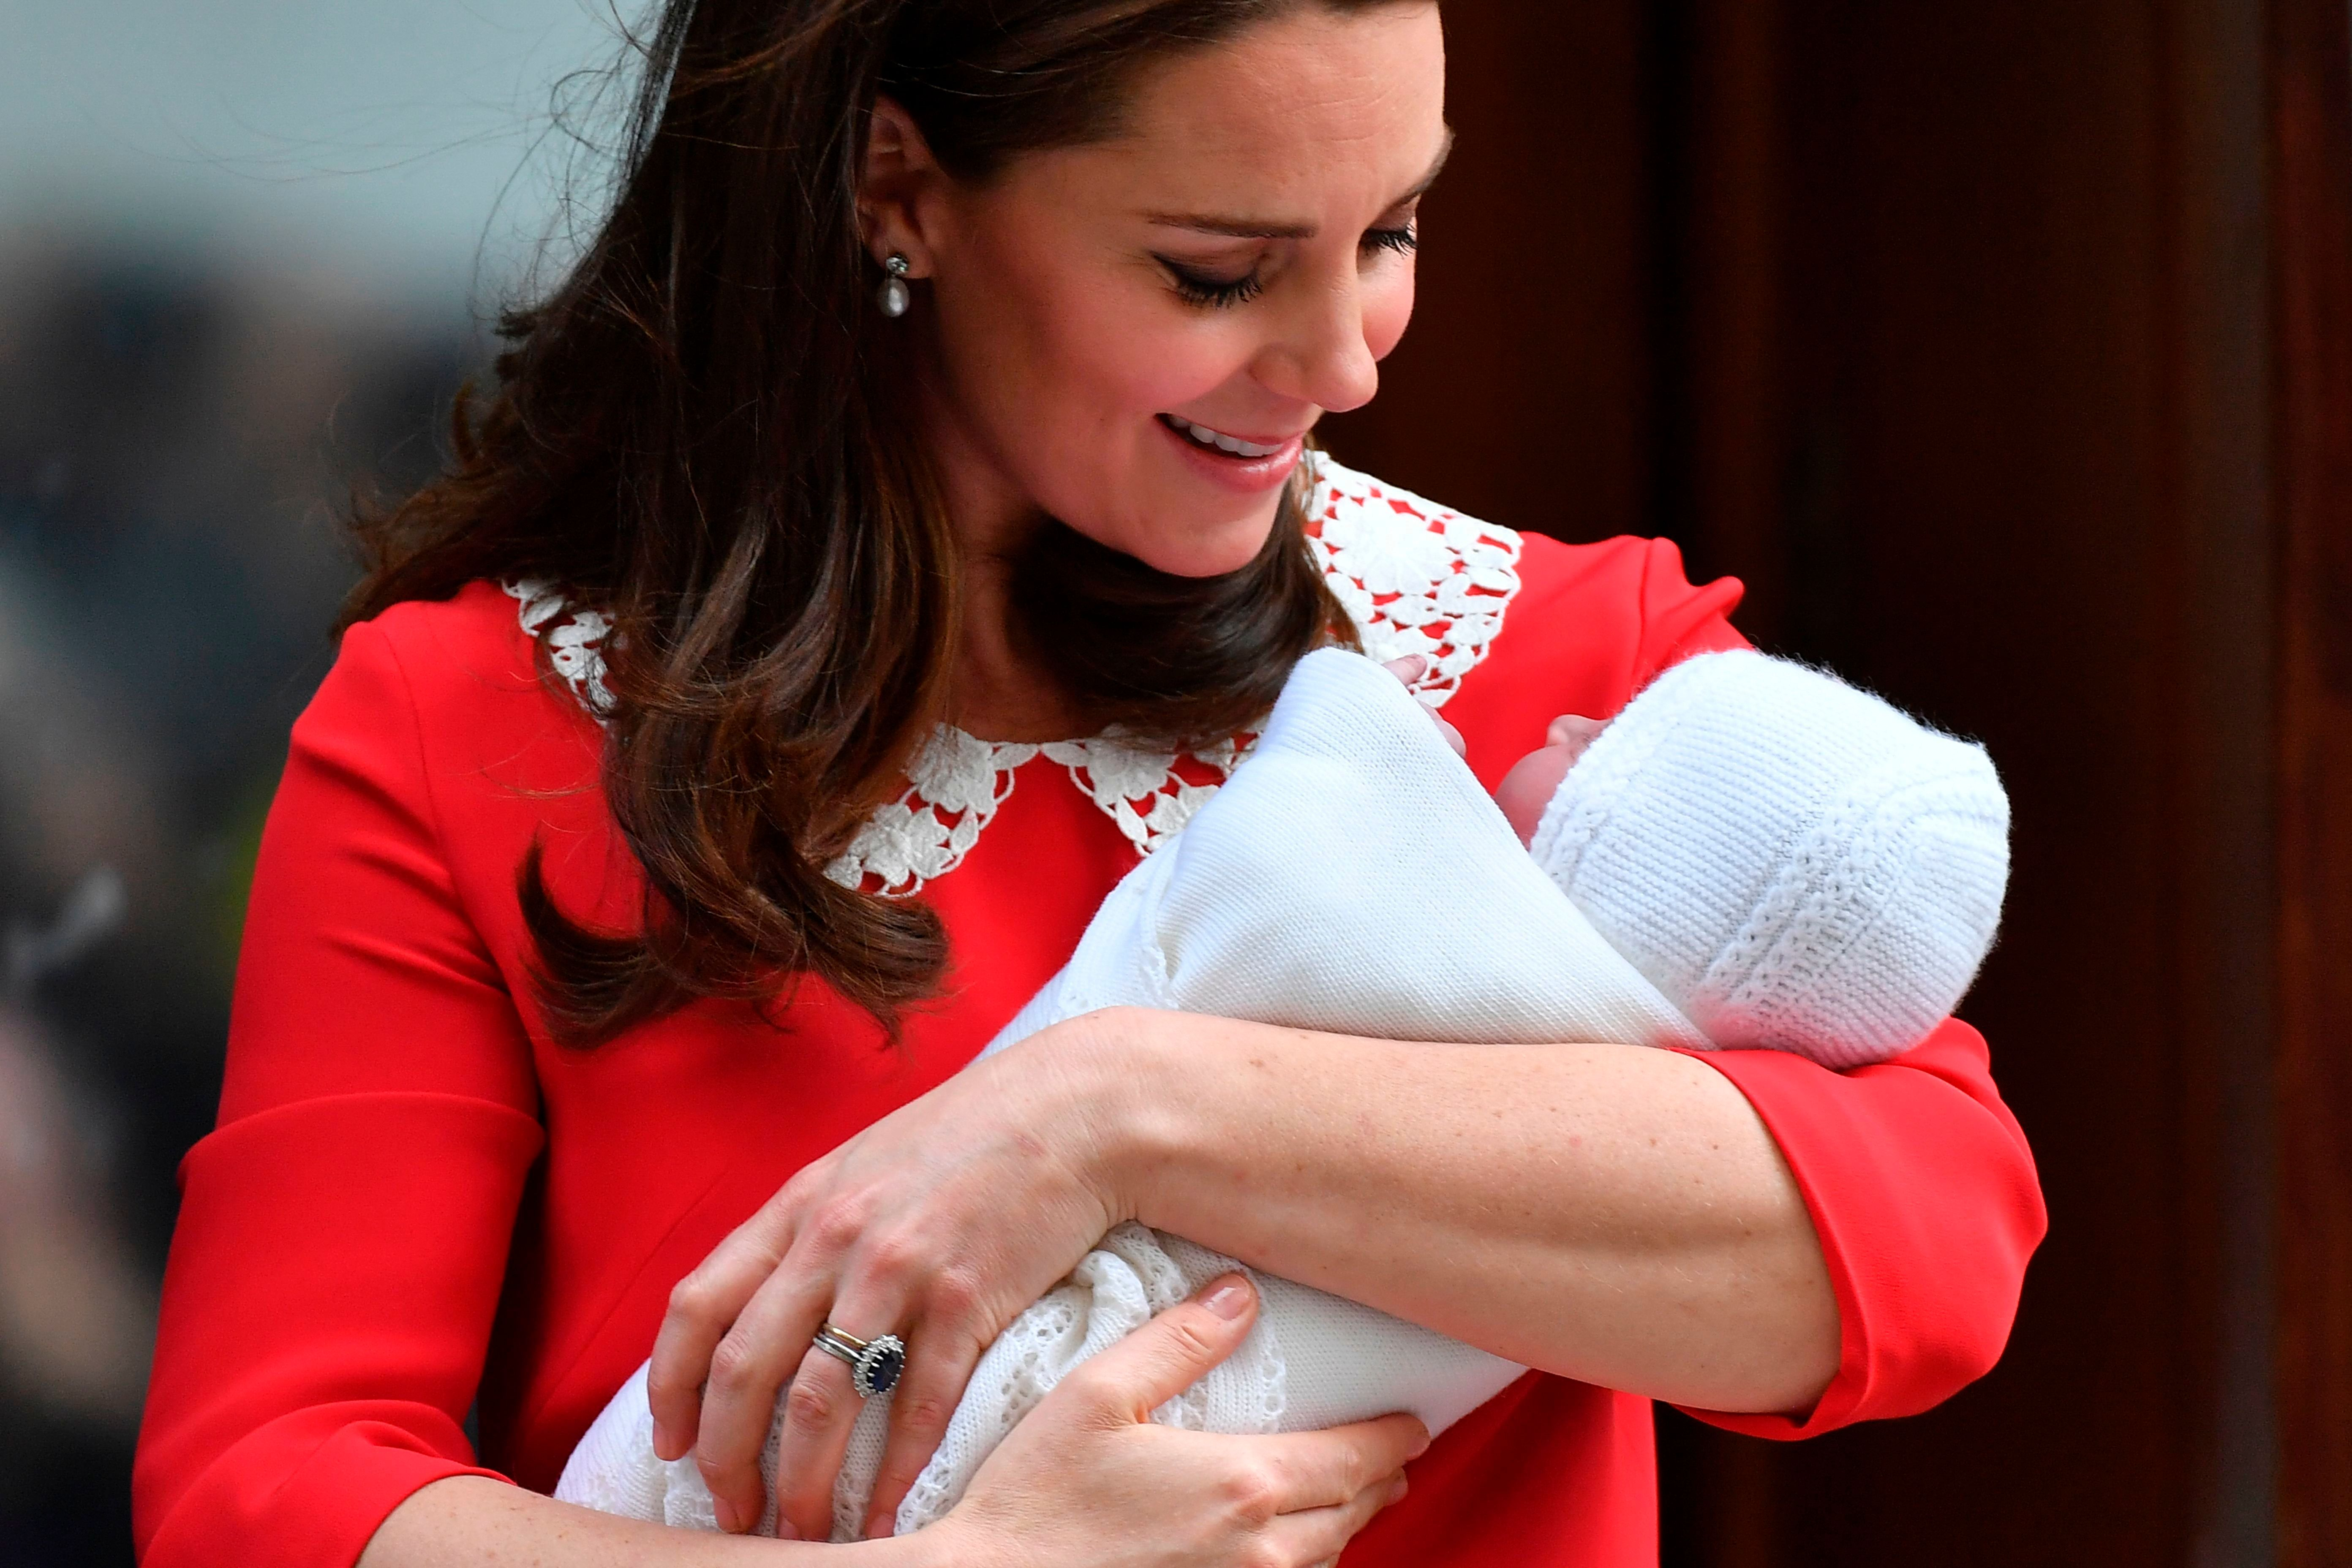 Britain's Catherine, Duchess of Cambridge aka Kate Middleton looks at her newly-born son, her third child, Britain's Prince Louis of Cambridge on the steps of the Lindo Wing at St Mary's Hospital in central London, on April 23, 2018. (Photo by Ben STANSALL / AFP)        (Photo credit should read BEN STANSALL/AFP/Getty Images)